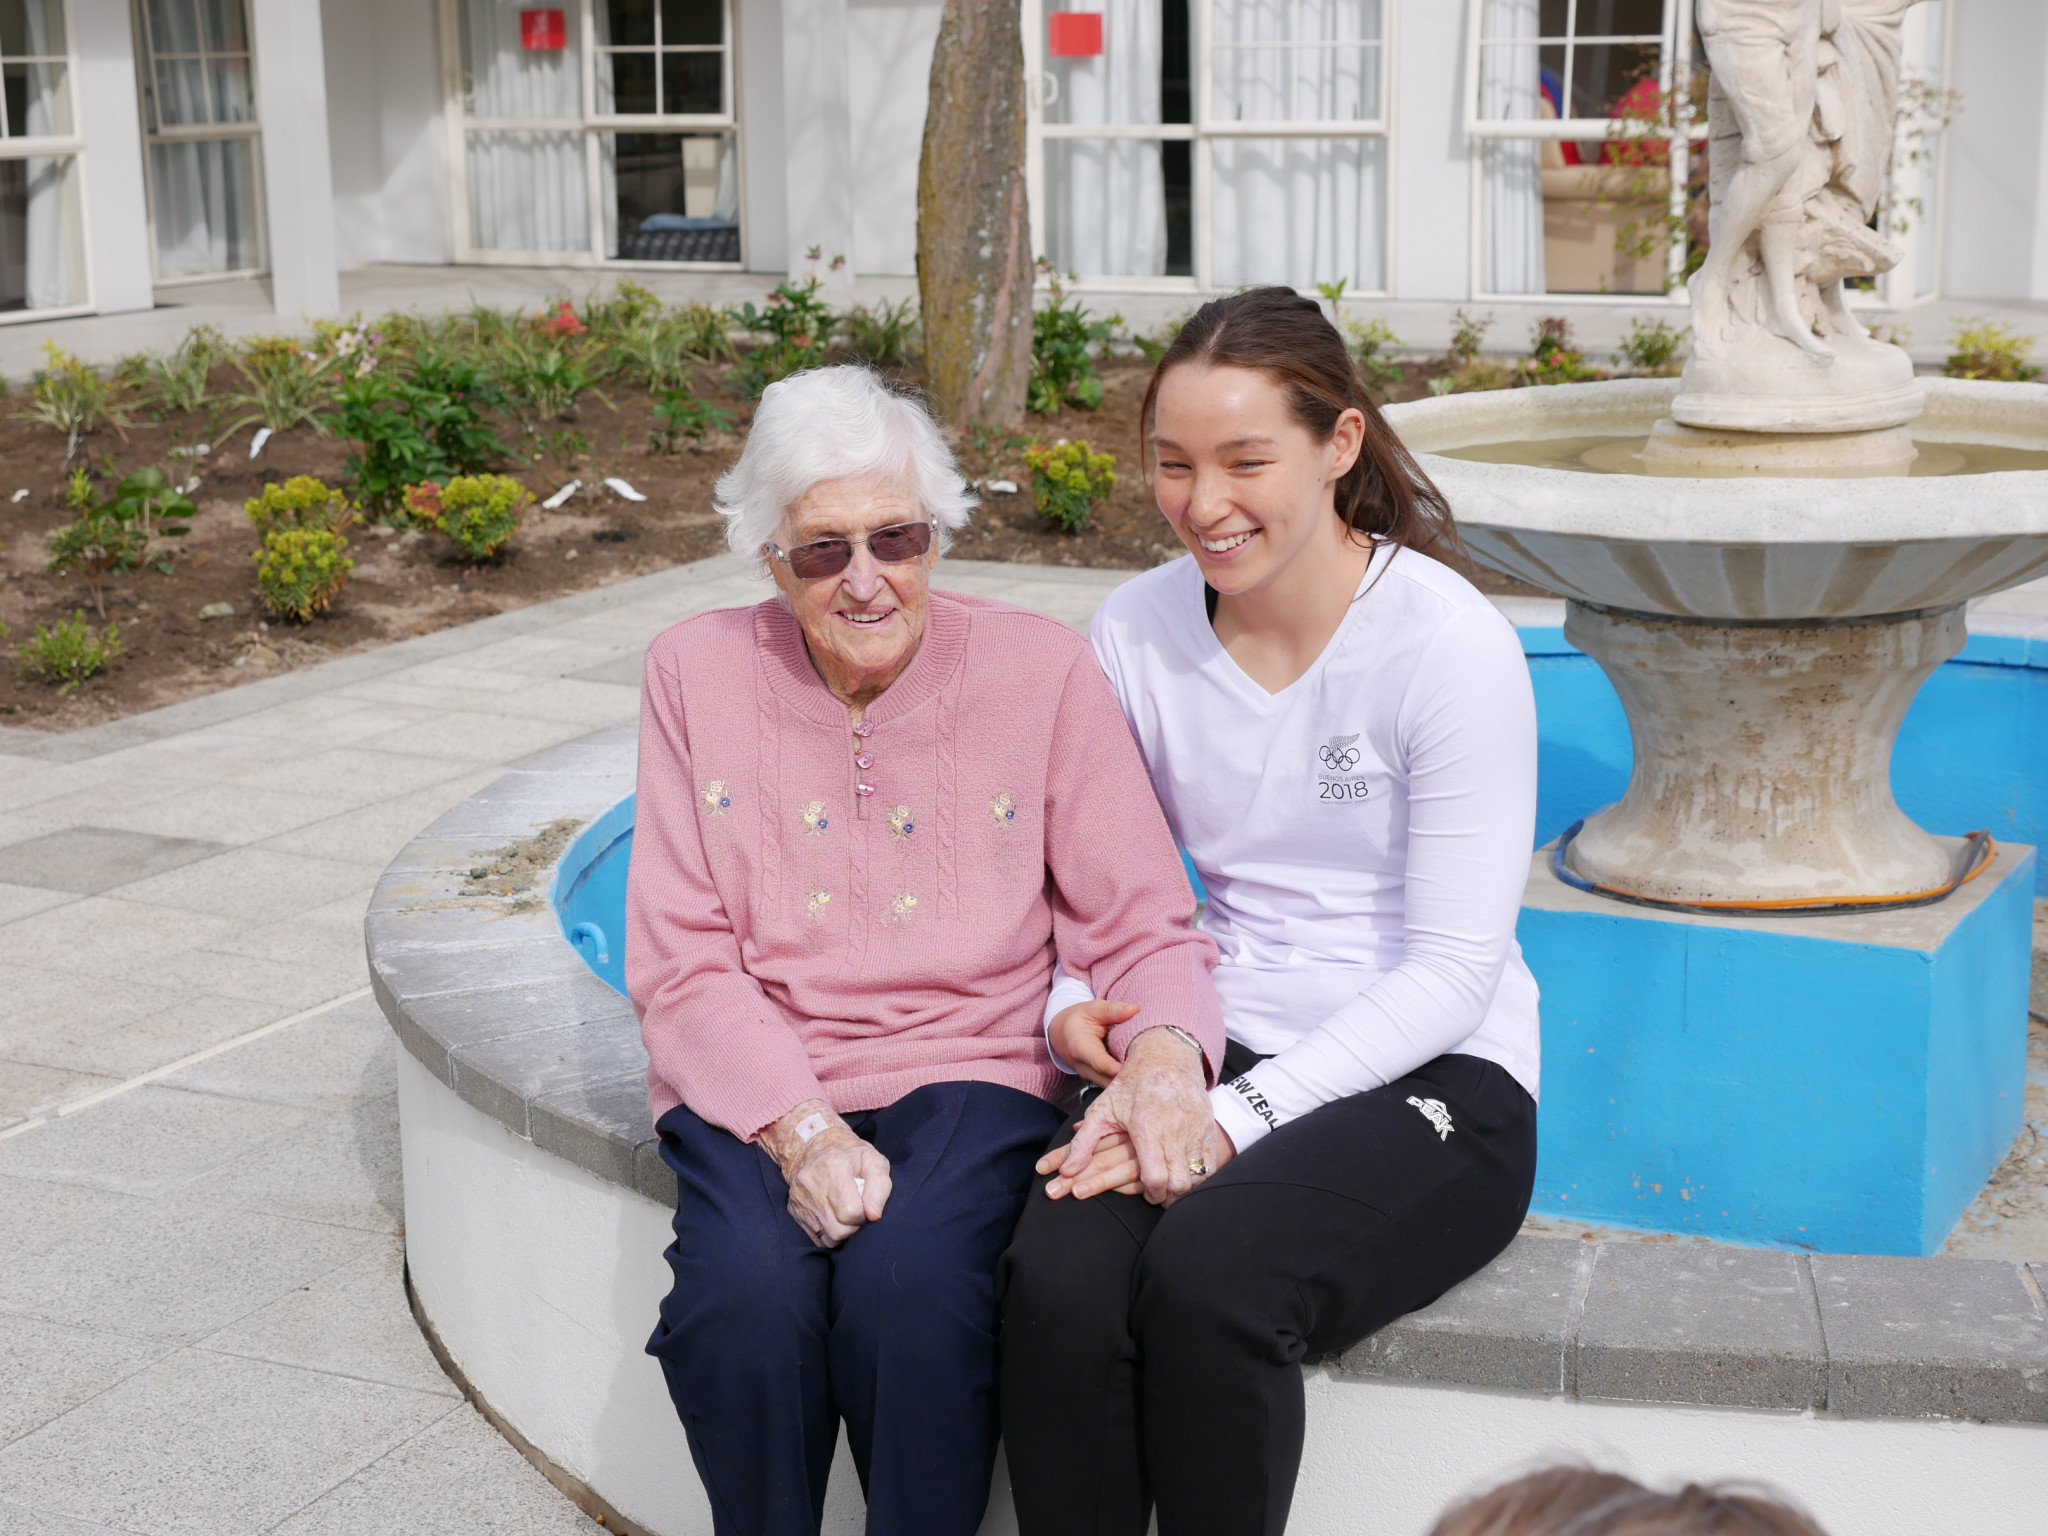 Gina Galloway, right, will compete in four swimming events at the Youth Olympics next month, 70 years after her grandmother Ngaire took part in the 1948 Olympics ©theNZteam.com